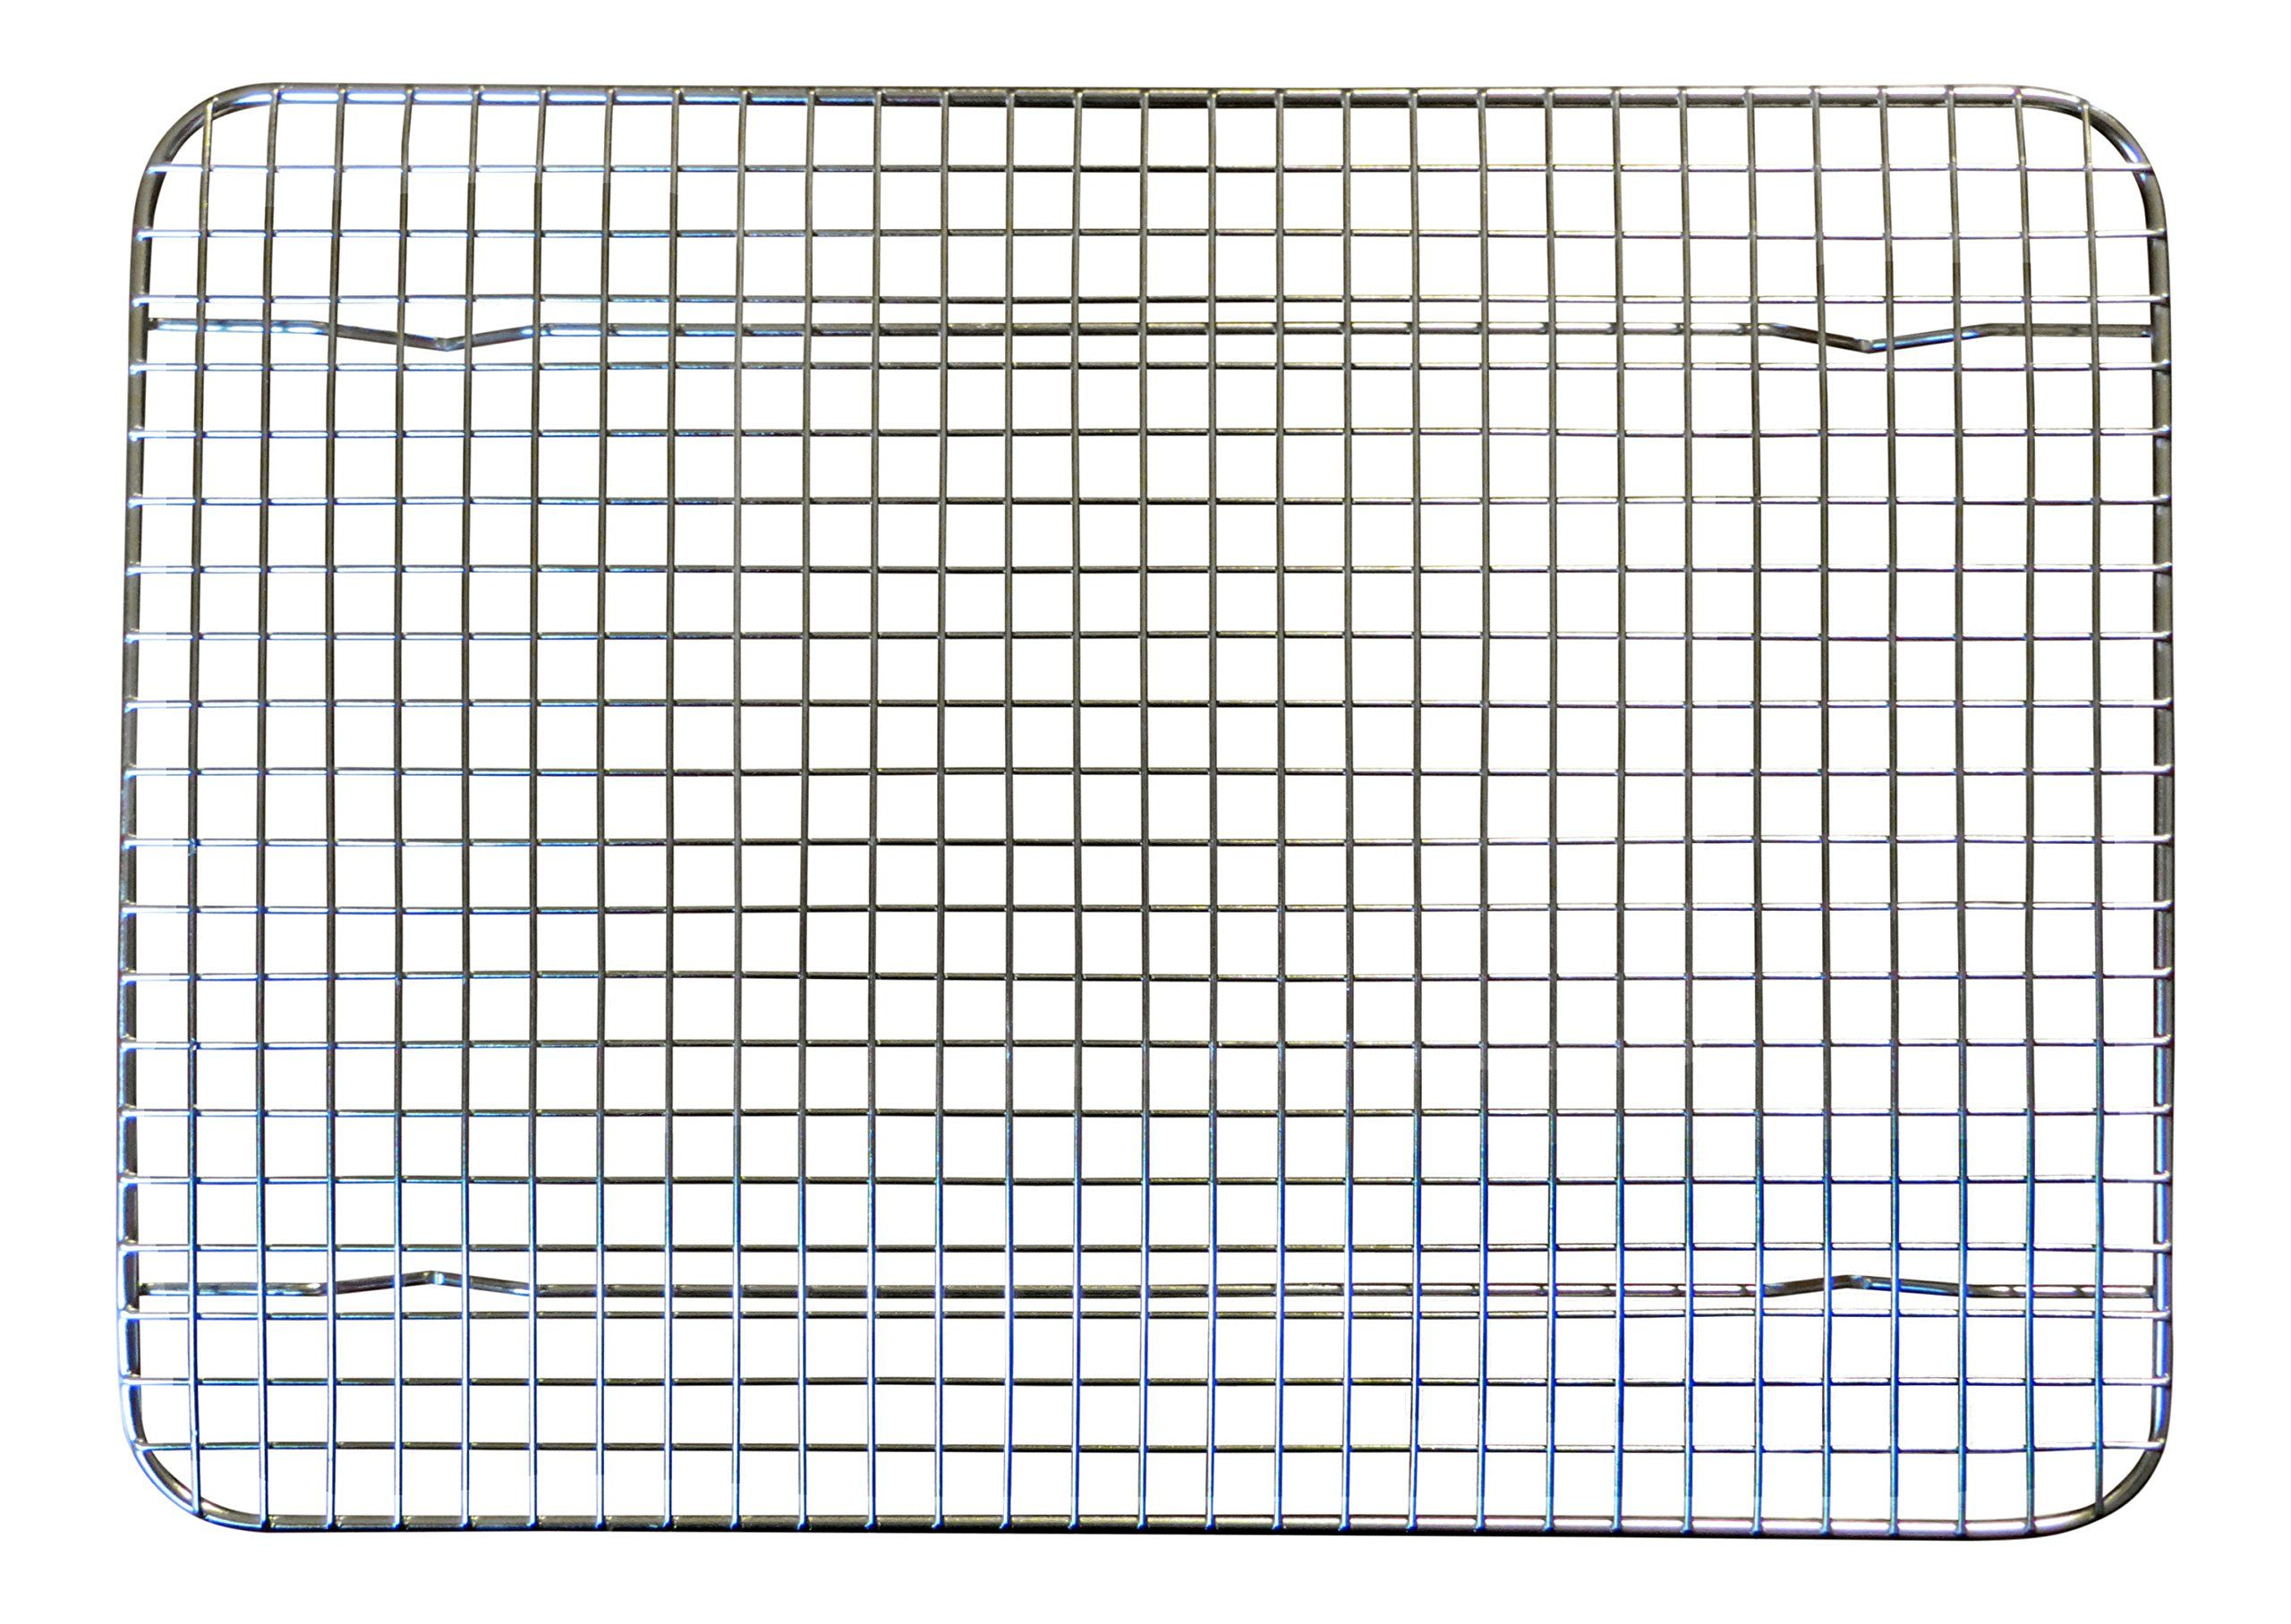 Need to buy 2x) Stainless Steel Cooling Rack - 8.5 Inches X 12 ...